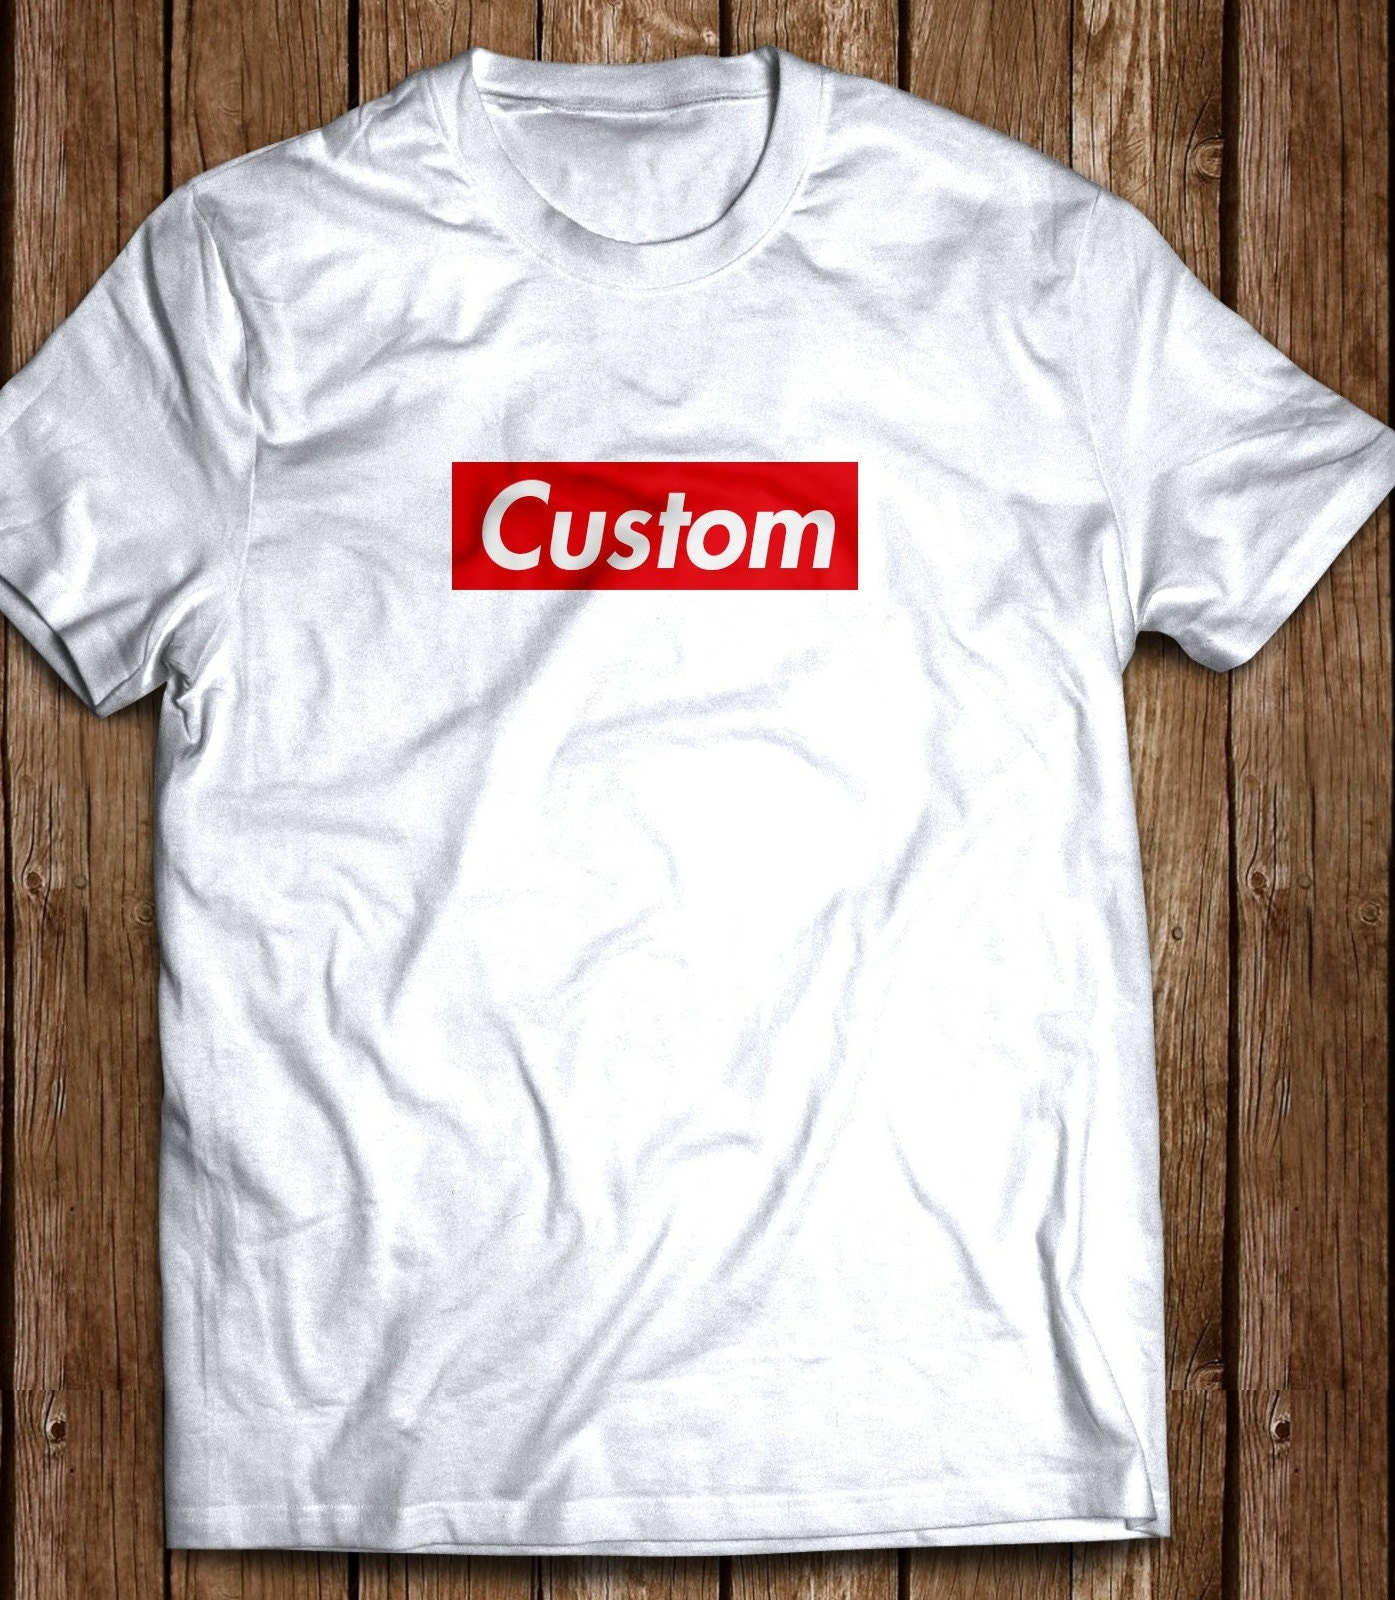 Custom Printed Shirts Seattle Cotswold Hire